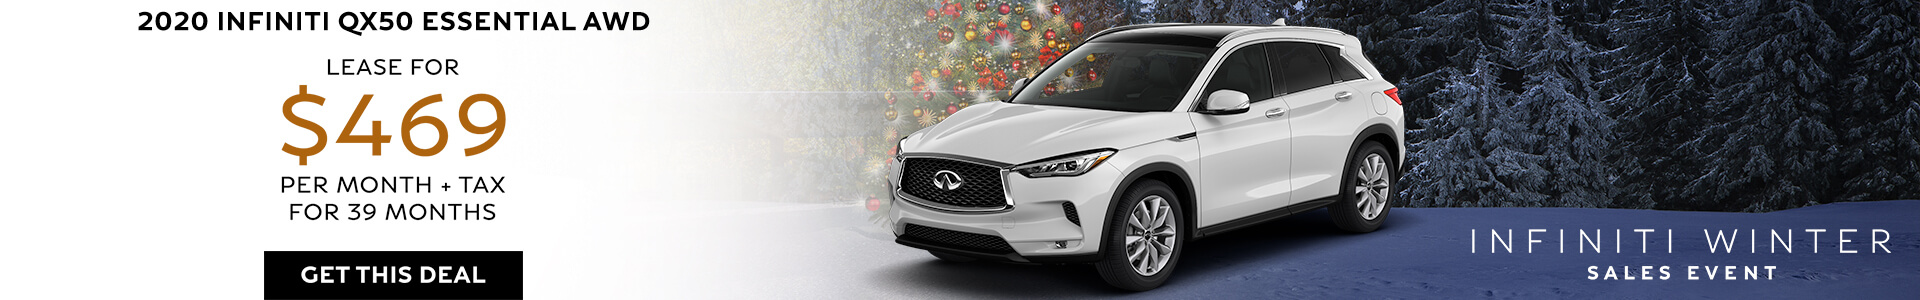 QX50 Lease for $469